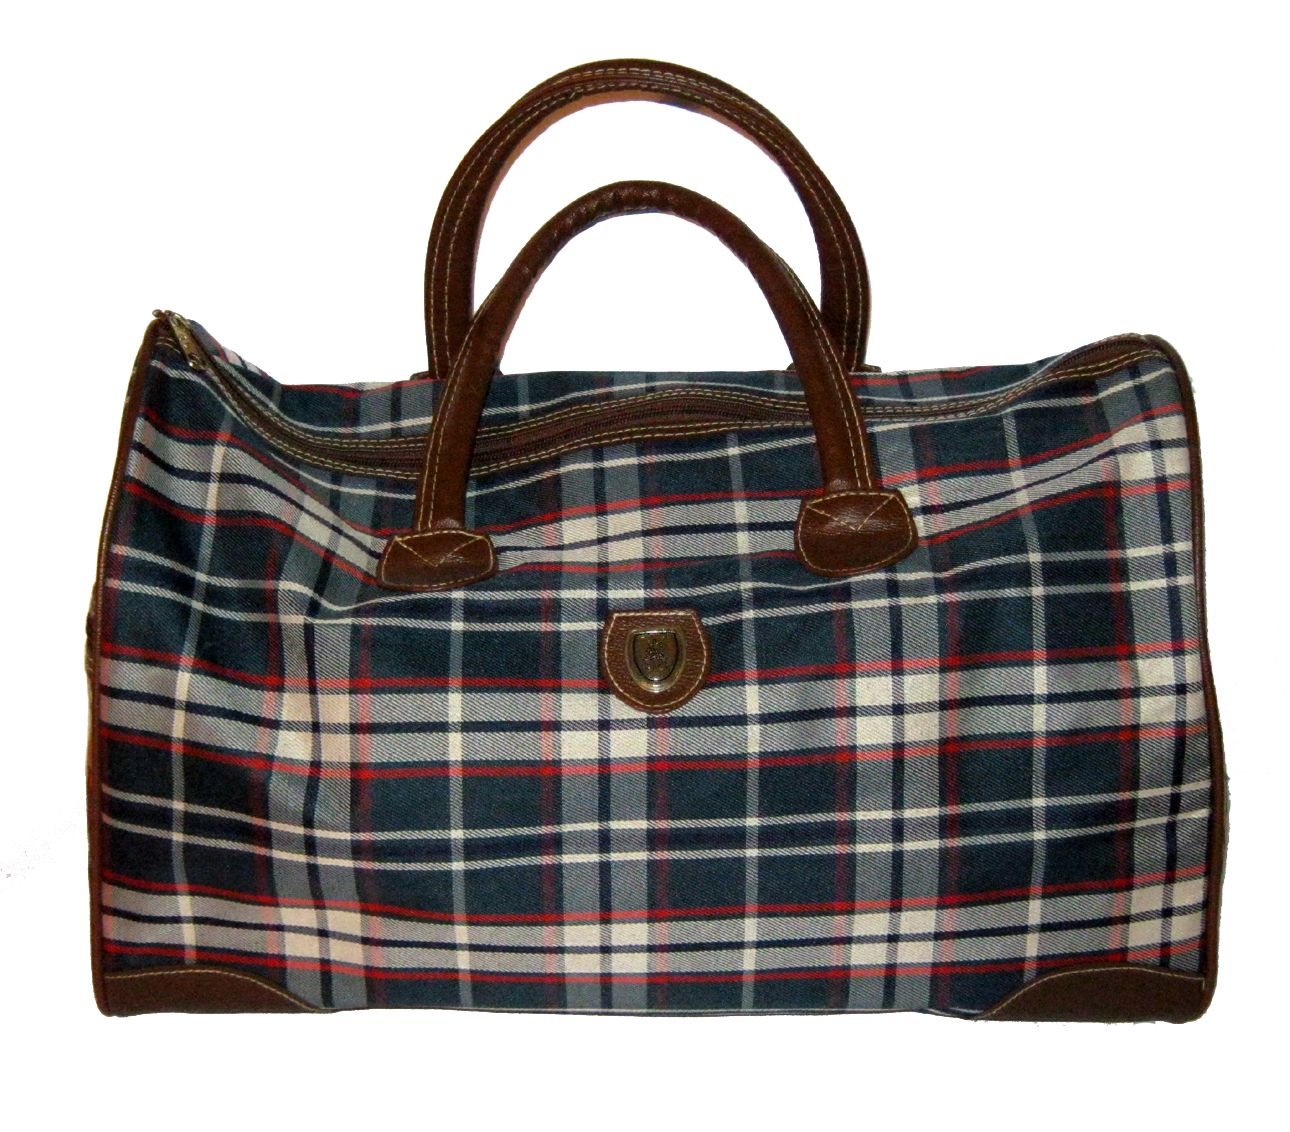 Extra Large Leather Tuscans Firenze Tote Bag   Accessories   Pinterest    Accessories, Bags and Discount designer 170b5941a0